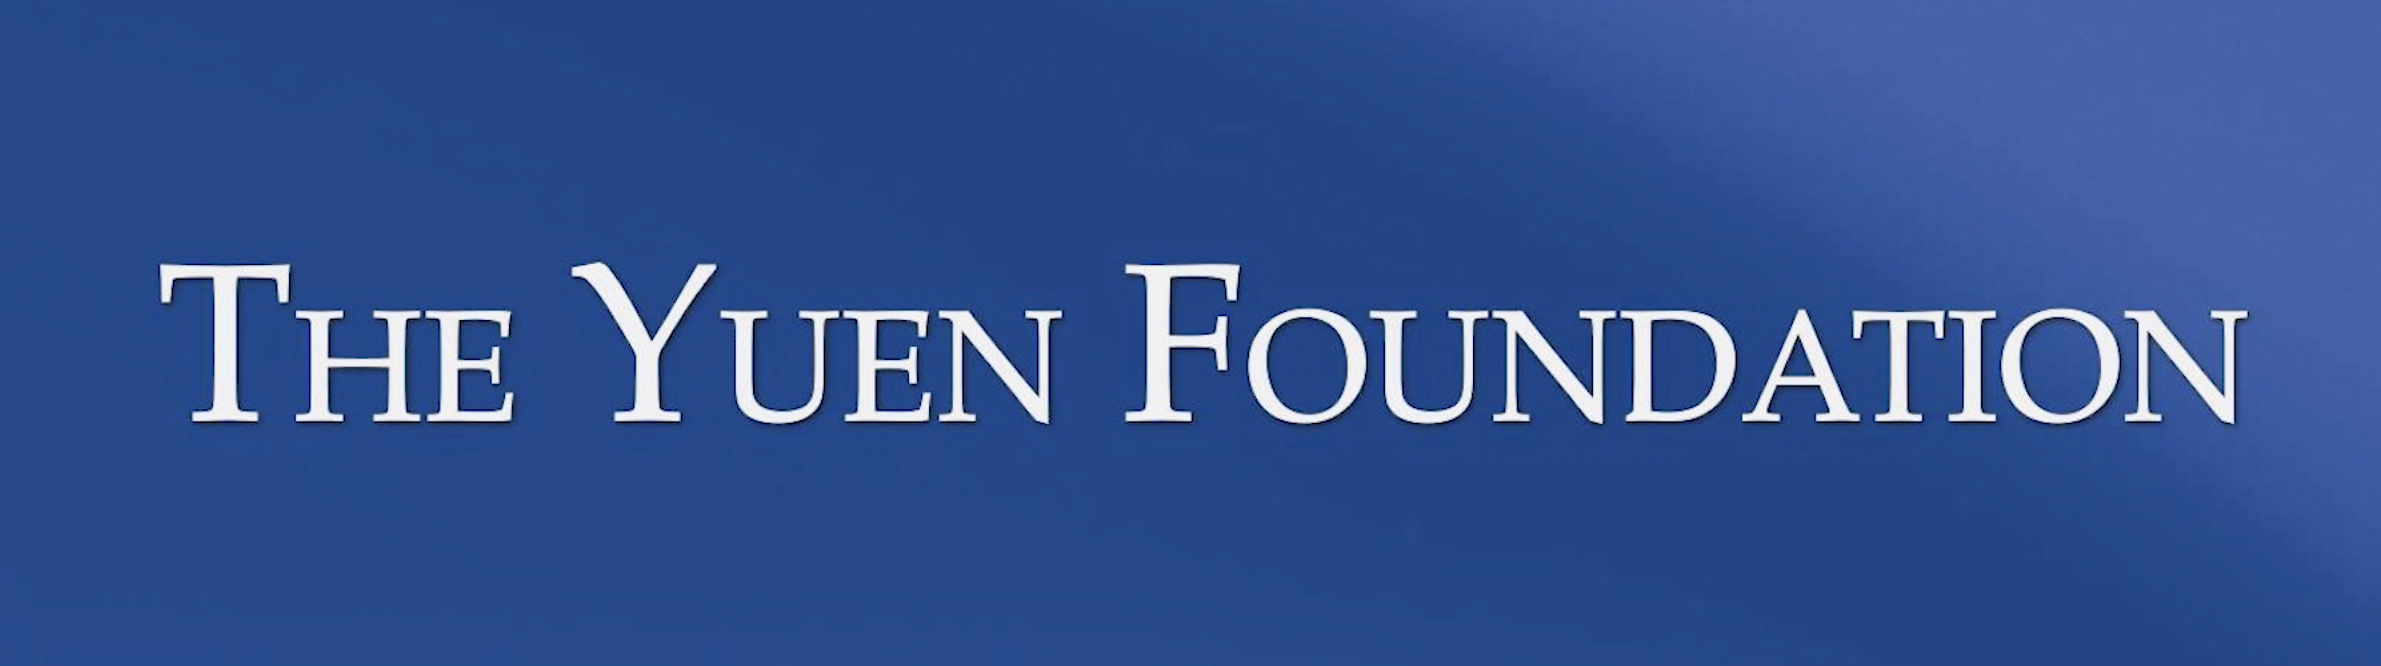 The Yuen Foundation.png